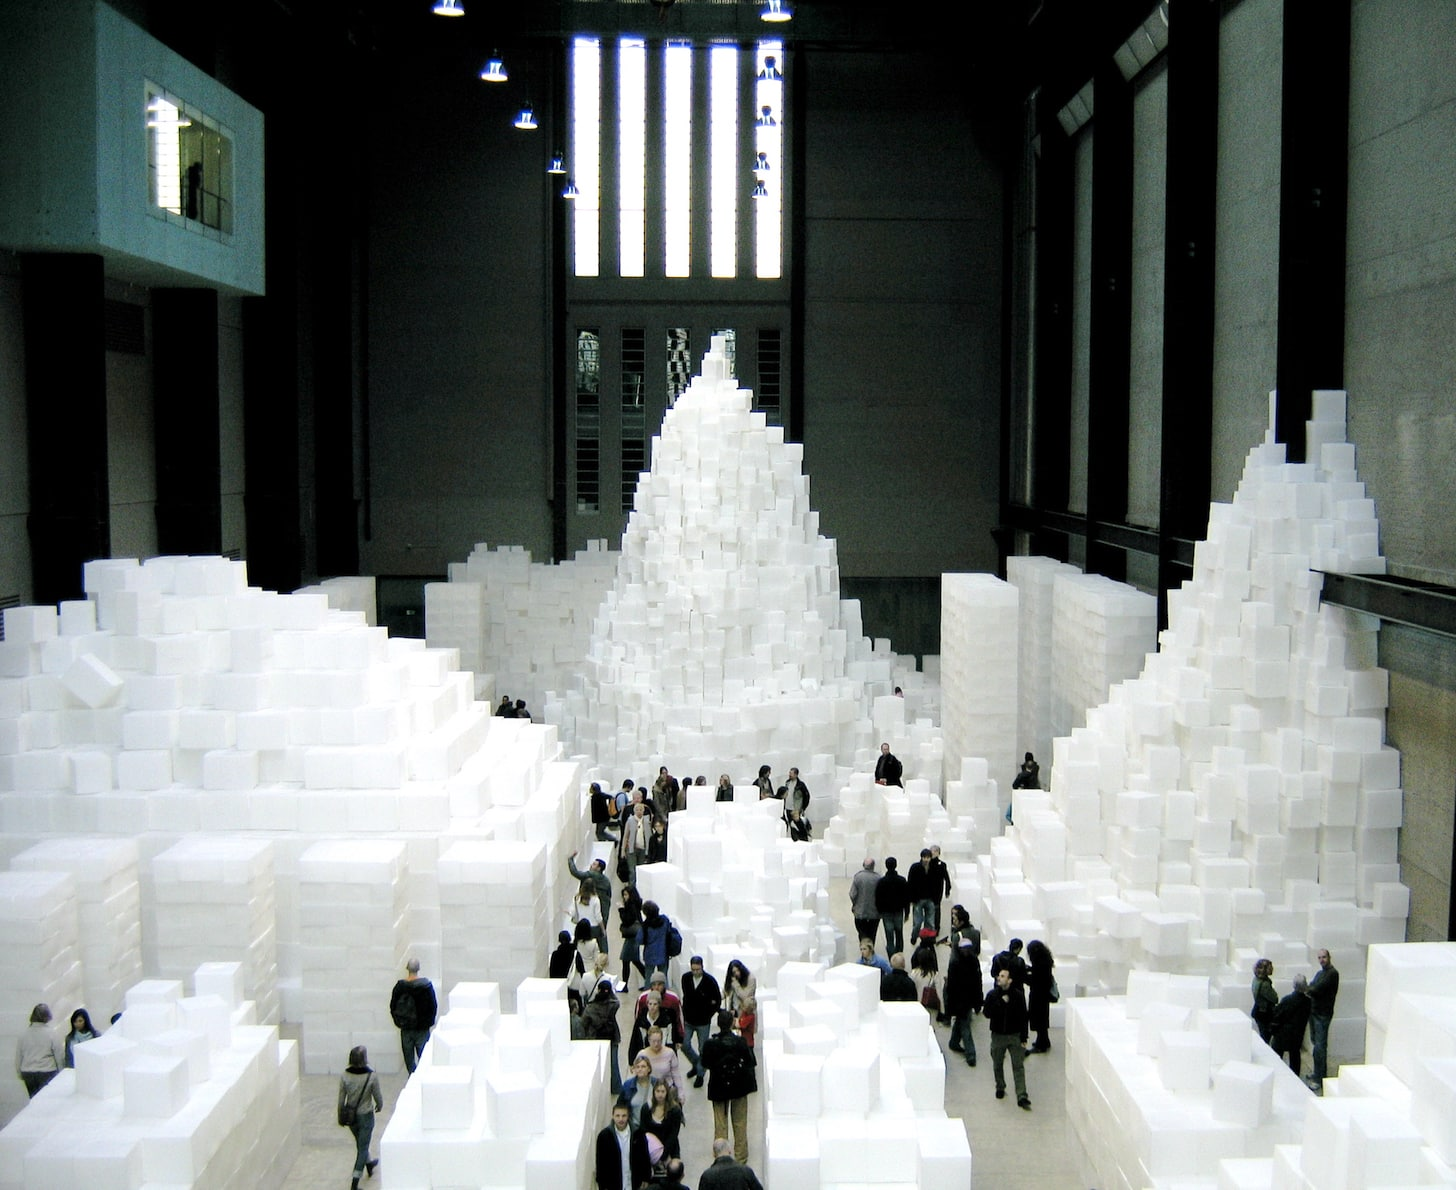 Places to visit in London - Rachel Whiteread's EMBANKMENT on display in the Turbine Hall of Tate Modern | pic: www.CGPGrey.com